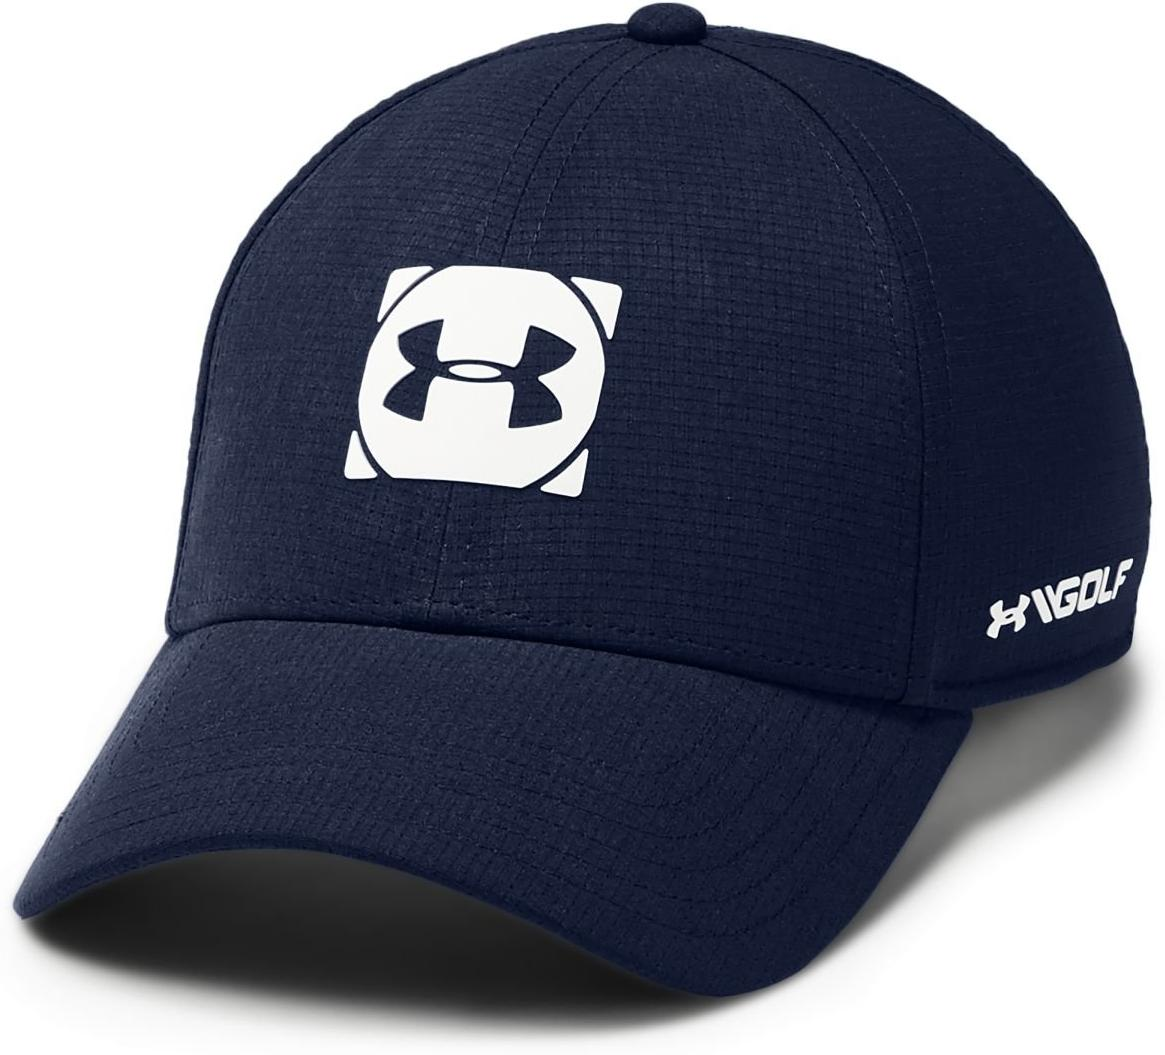 Cap Under Armour Under Armour Men s Official Tour Cap 3.0